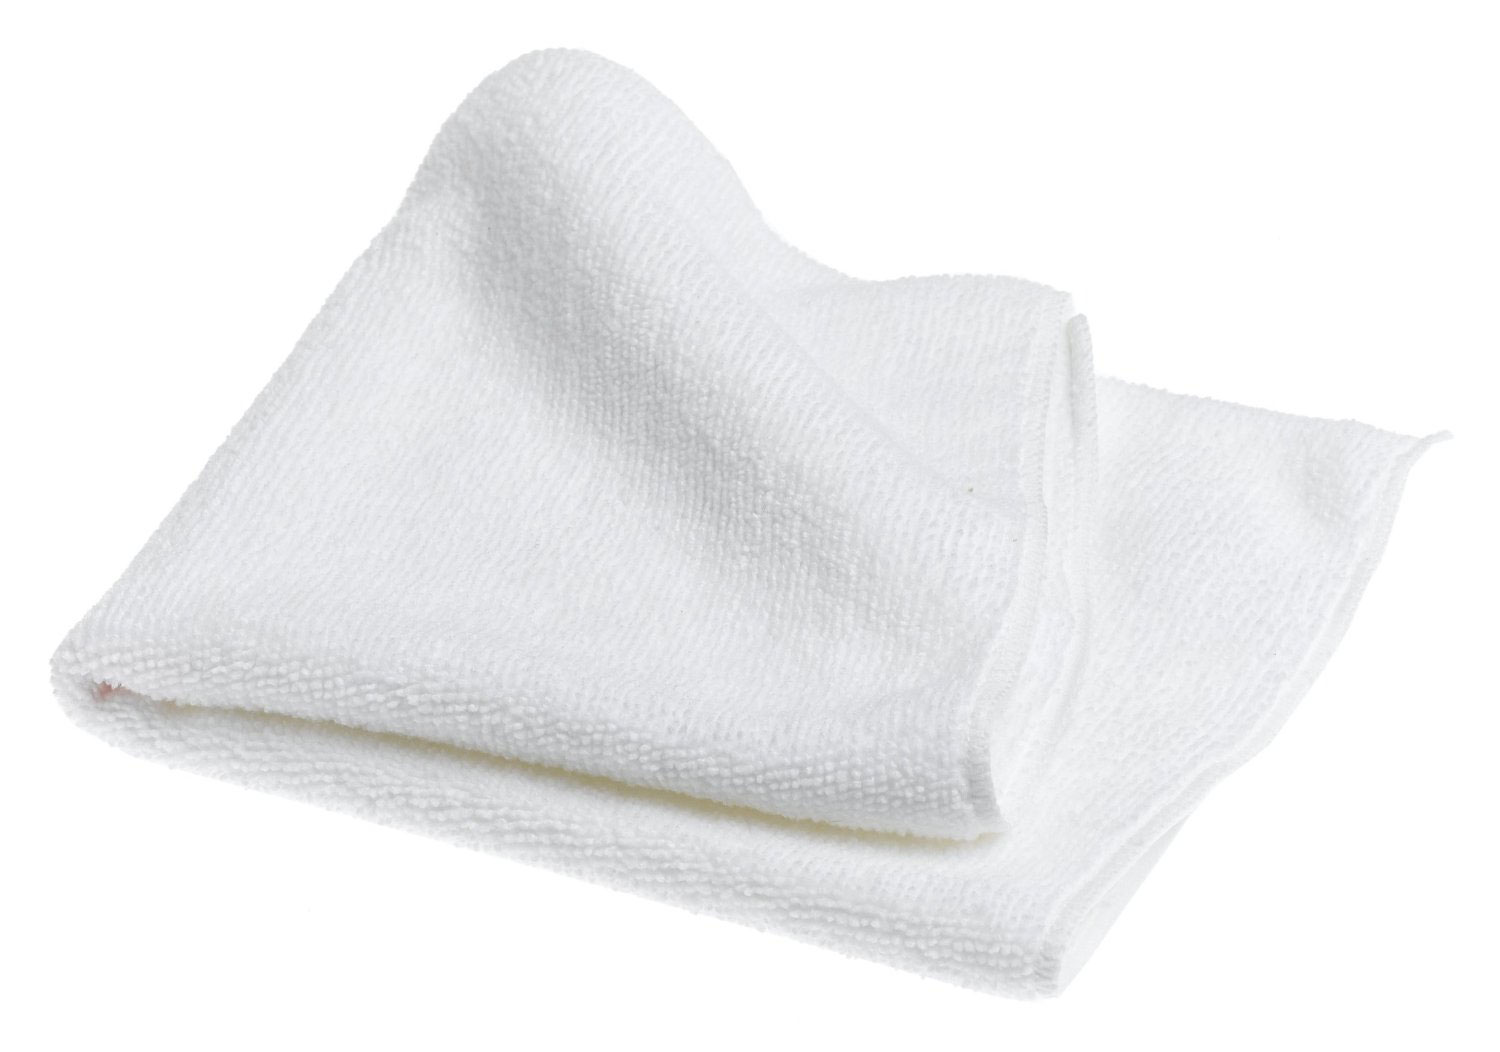 Microfiber Dish Cloth - White in Kitchen Towels